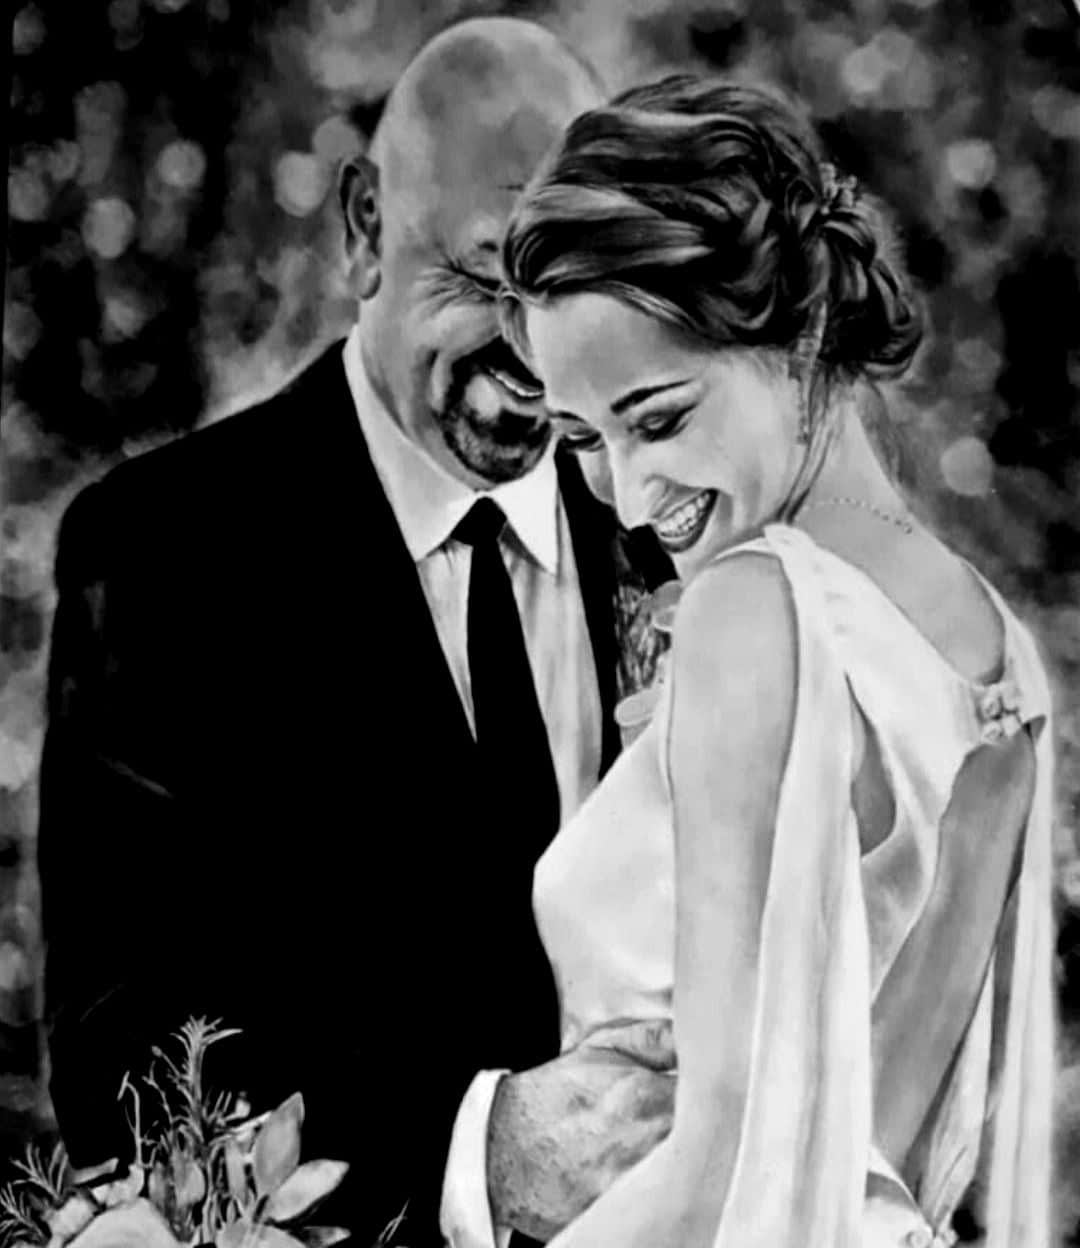 couple Weeding aniversary charcoal portrait paintings